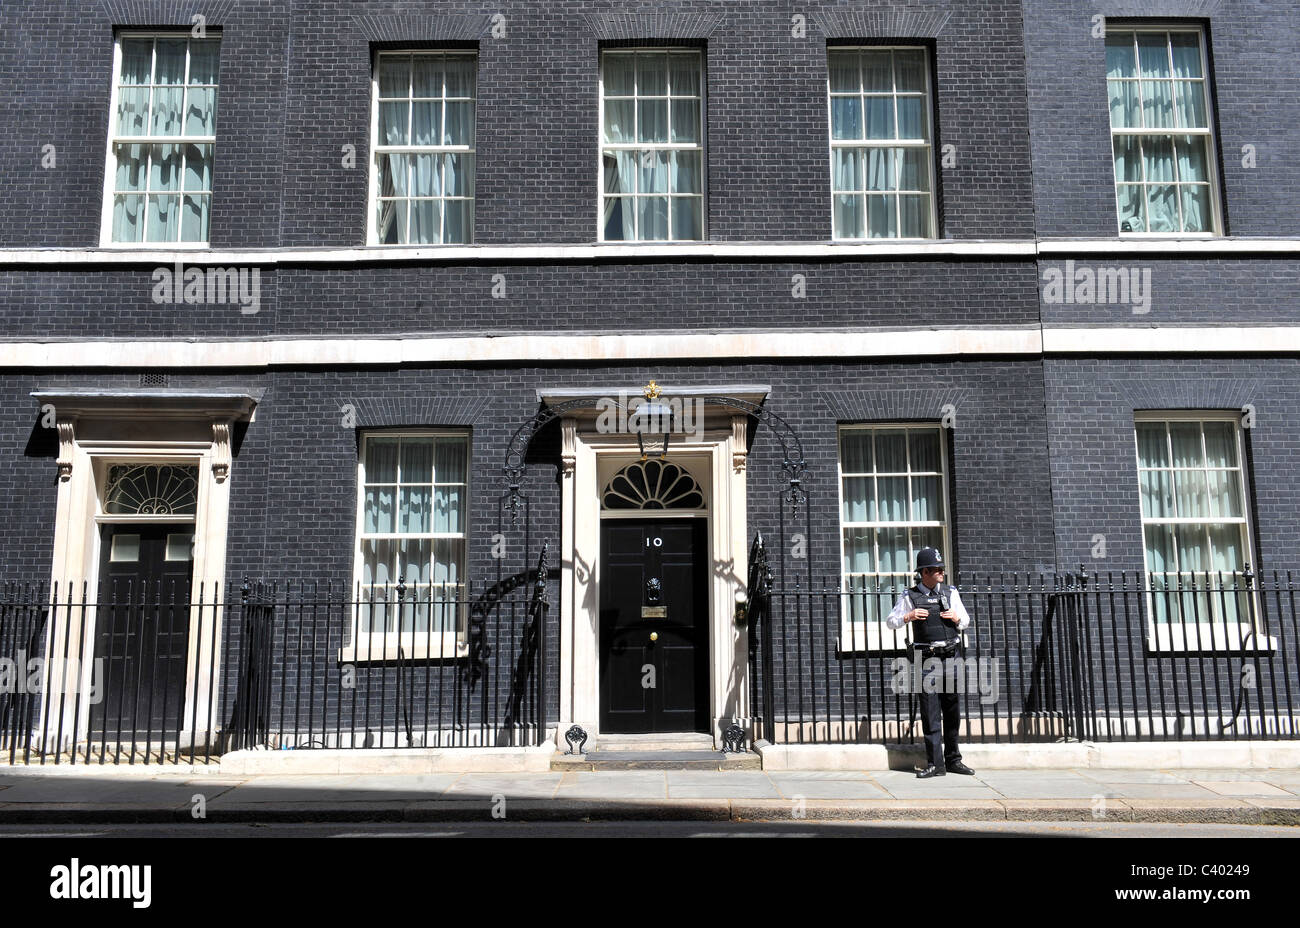 10 Downing Street in London, the official residence of the Prime Minister of England. - Stock Image